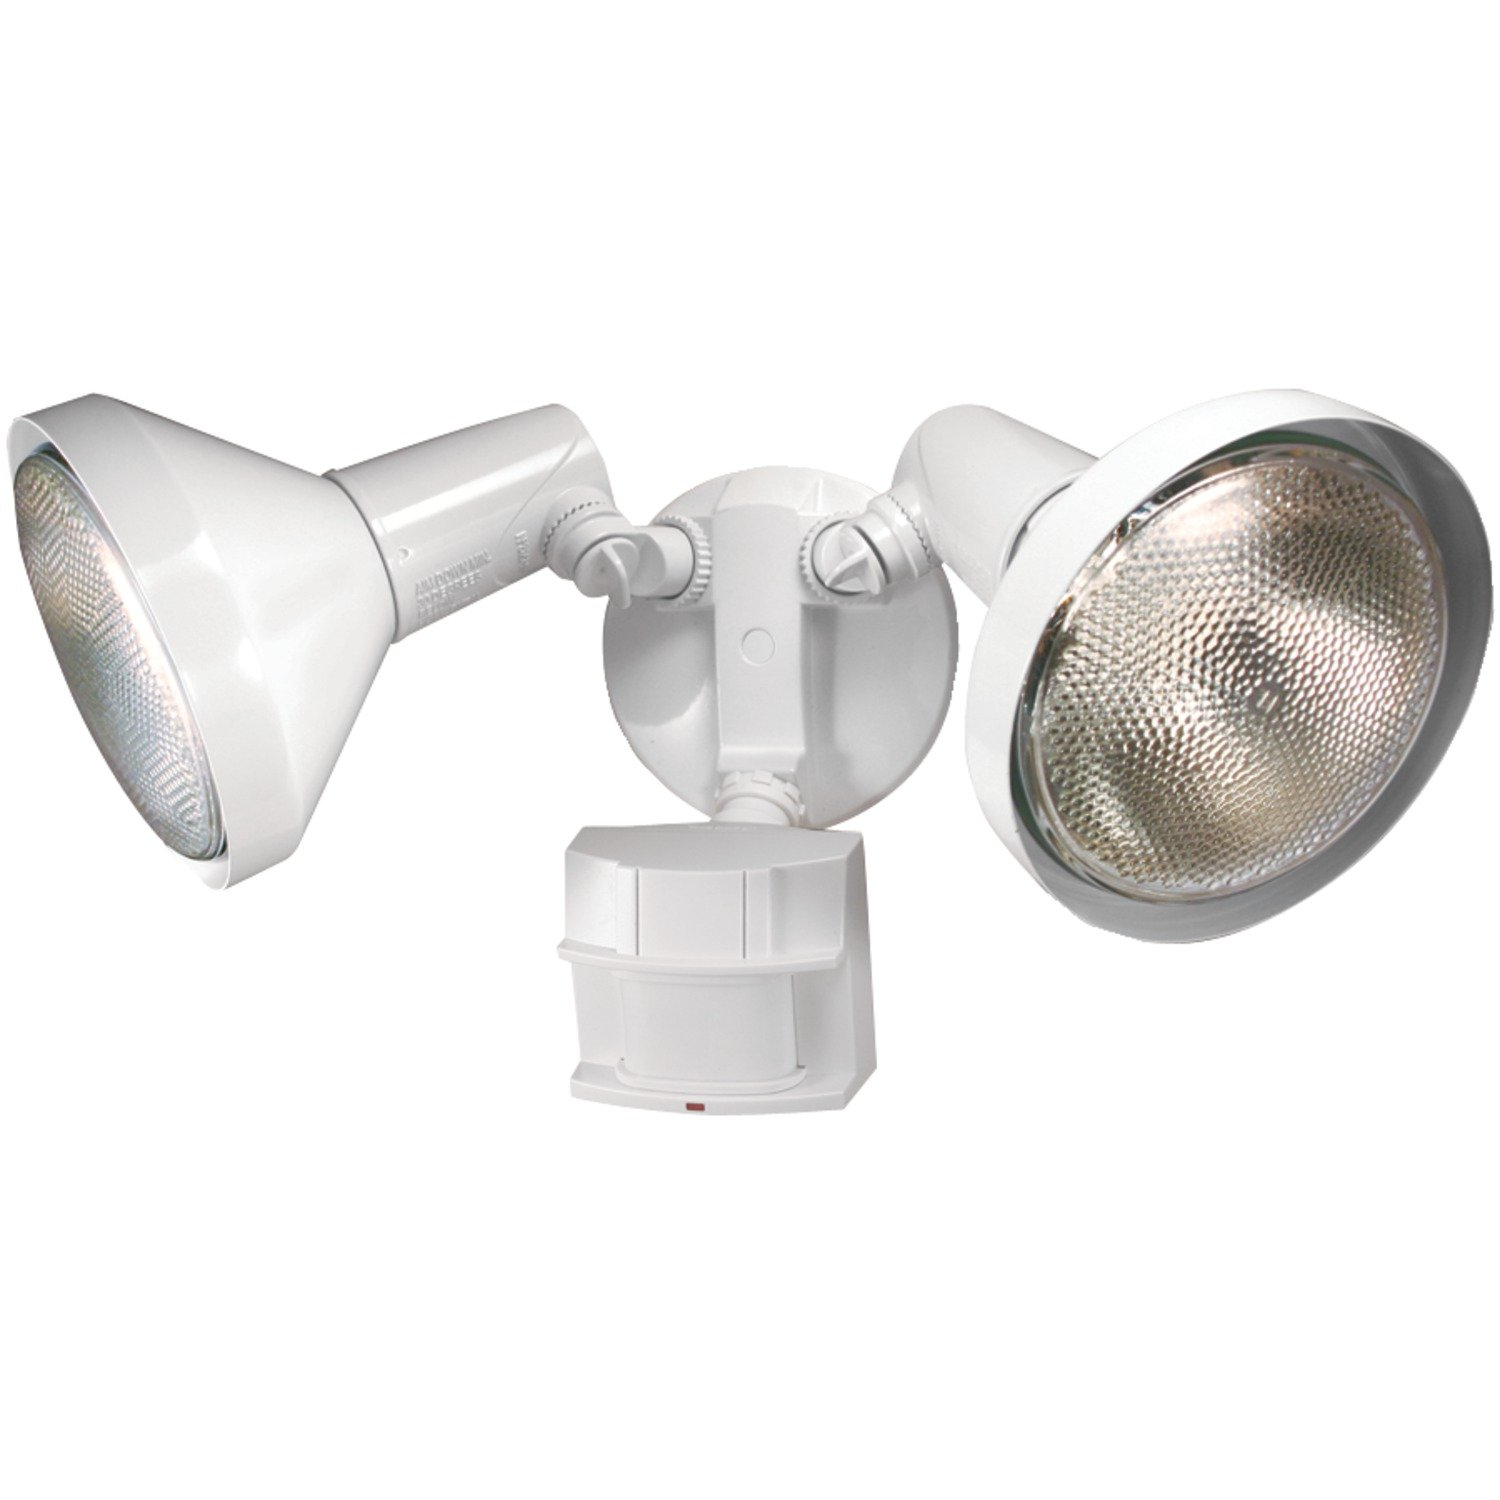 Heath Zenith SL-5412-WH-D 300-Watt Motion-Sensing Twin Security Light,  White - Flood Lighting - Amazon.com